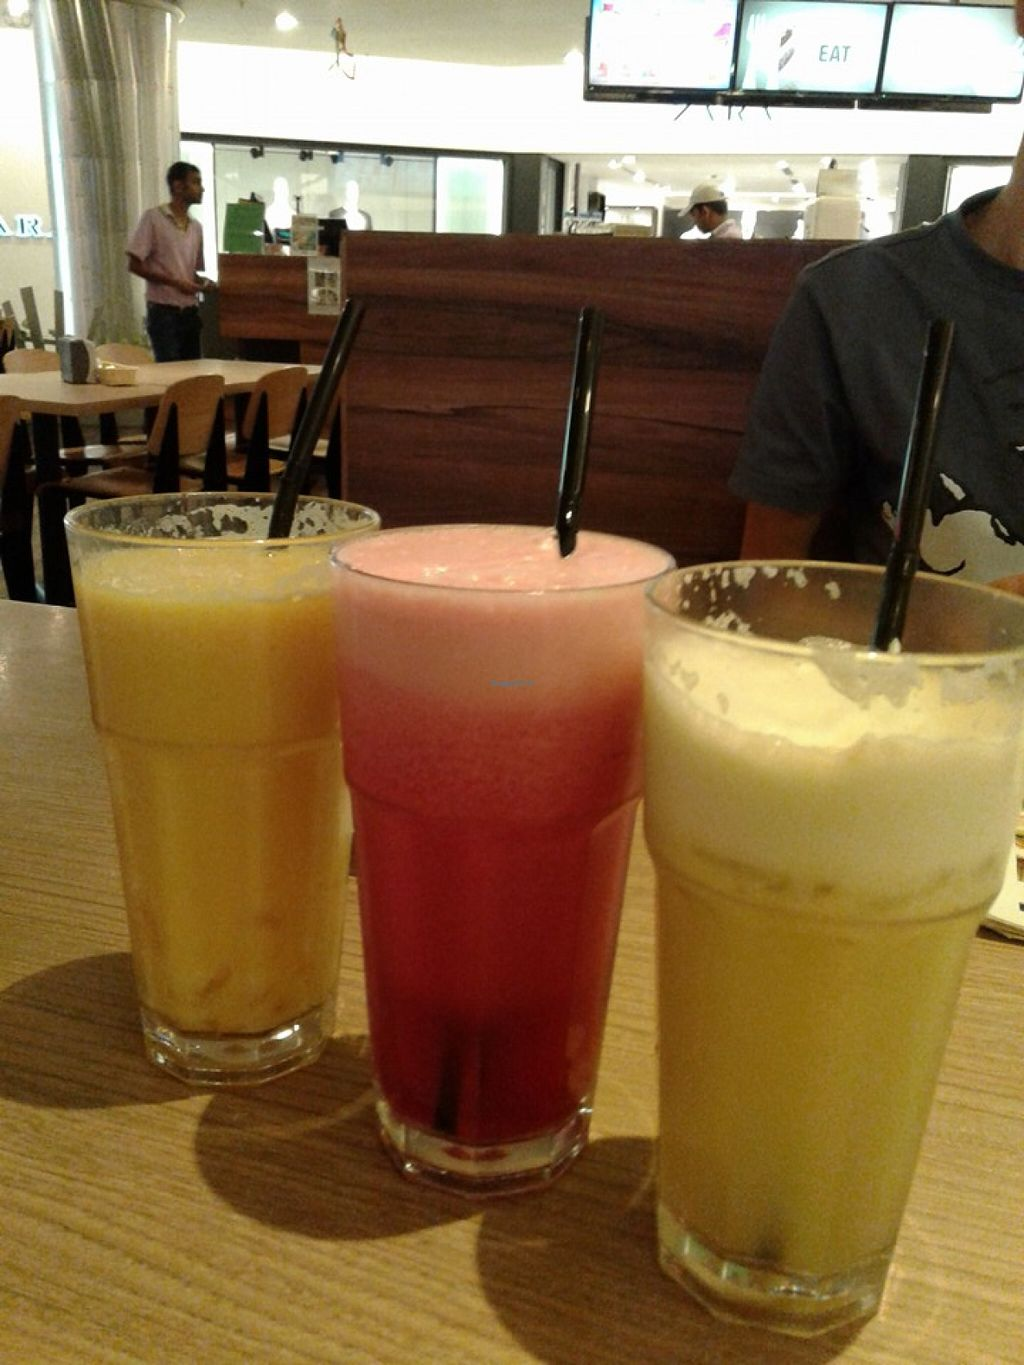 """Photo of Simple Life - Jalan Sultan Ismail  by <a href=""""/members/profile/sfalee"""">sfalee</a> <br/>Juices ~ Mango Pineapple Apple Juice, Beetroot, apple, pineapple, Spinach Juice, Apple, pear, Pineapple Juice <br/> June 21, 2016  - <a href='/contact/abuse/image/44155/155250'>Report</a>"""